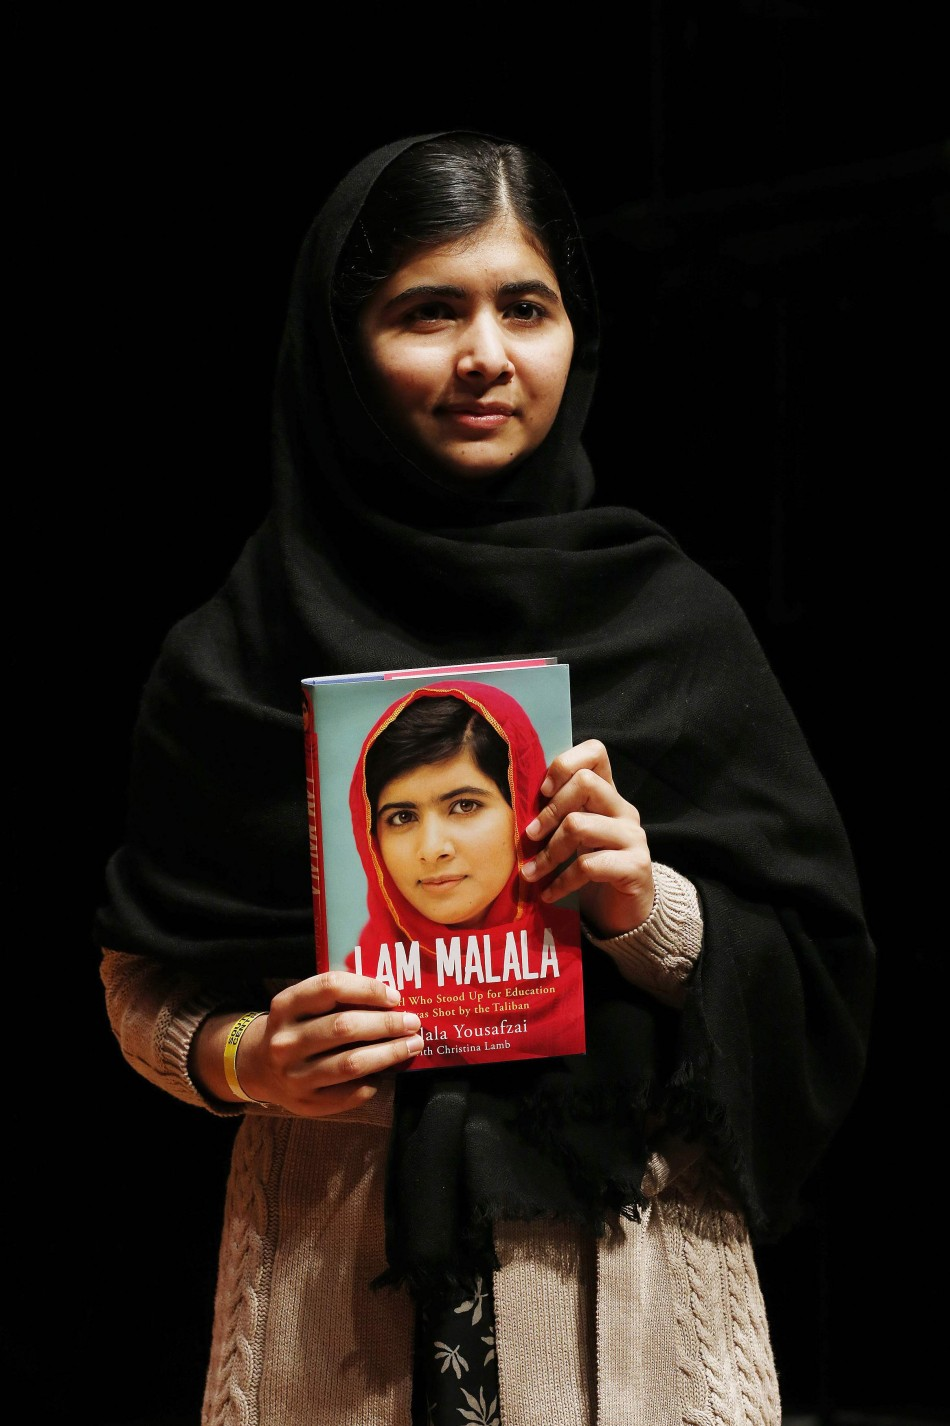 Pakistani teenage activist Yousafzai poses for pictures before an event launching her memoir